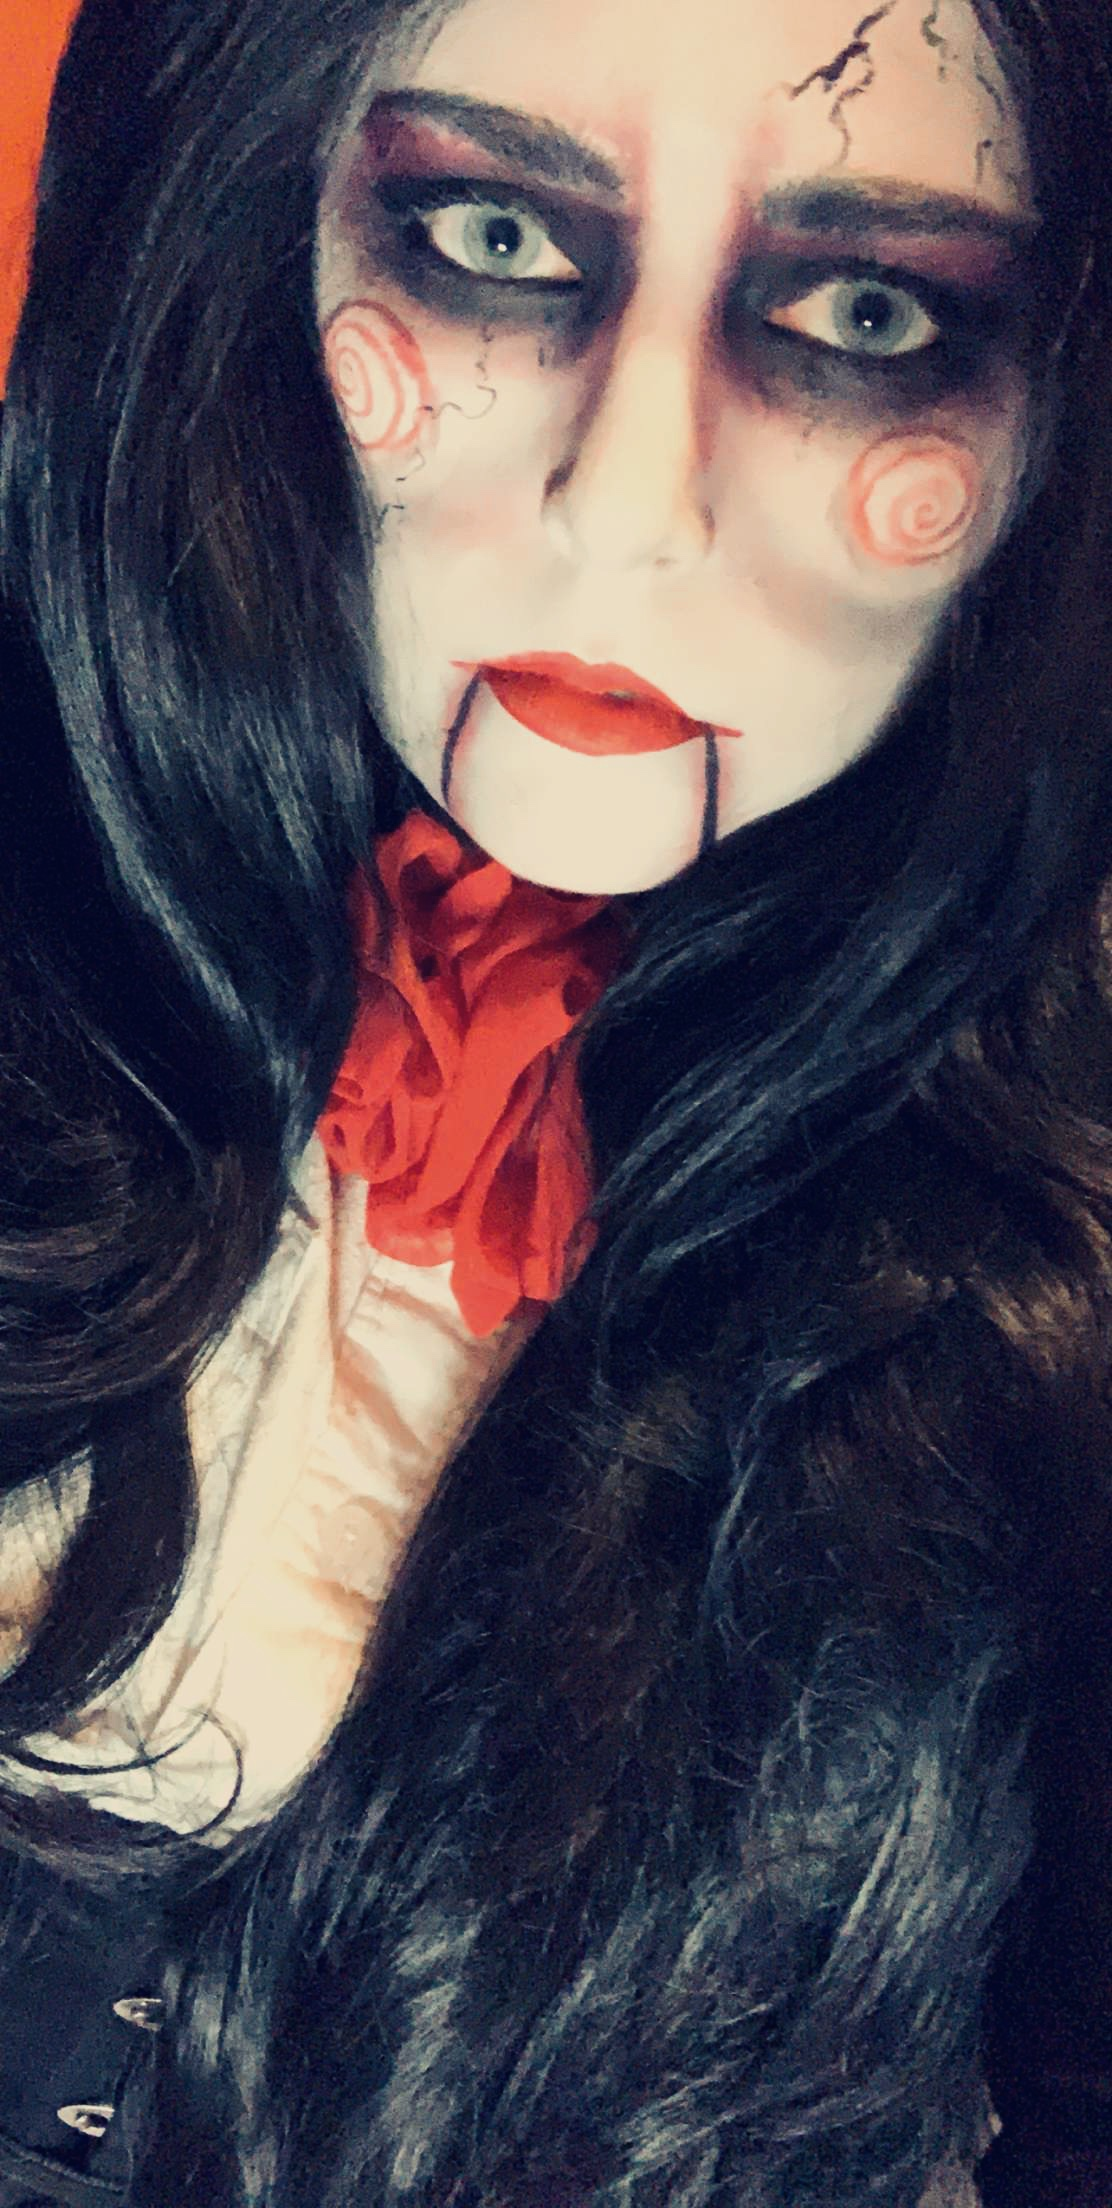 jigsaw, halloween horror-themed makeup look